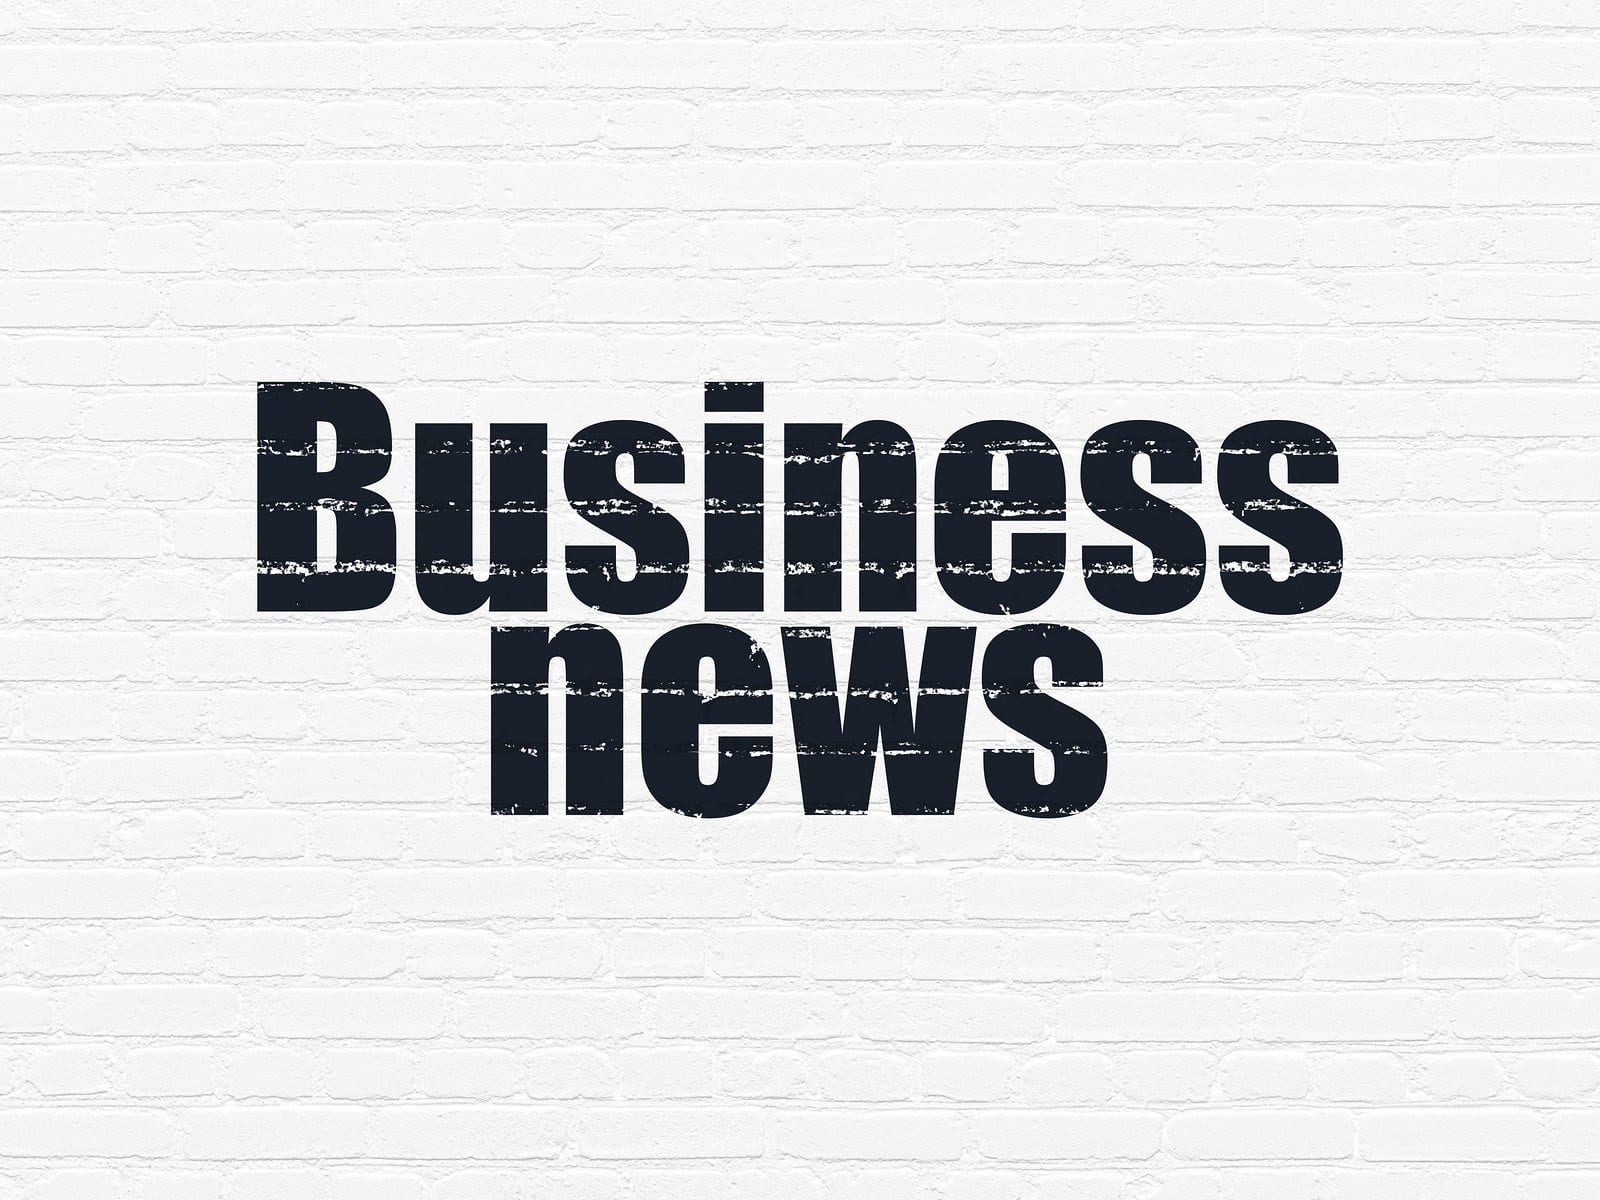 Business News: Apache Corporation Name One of the World's MOst Admired Companies by Fortune